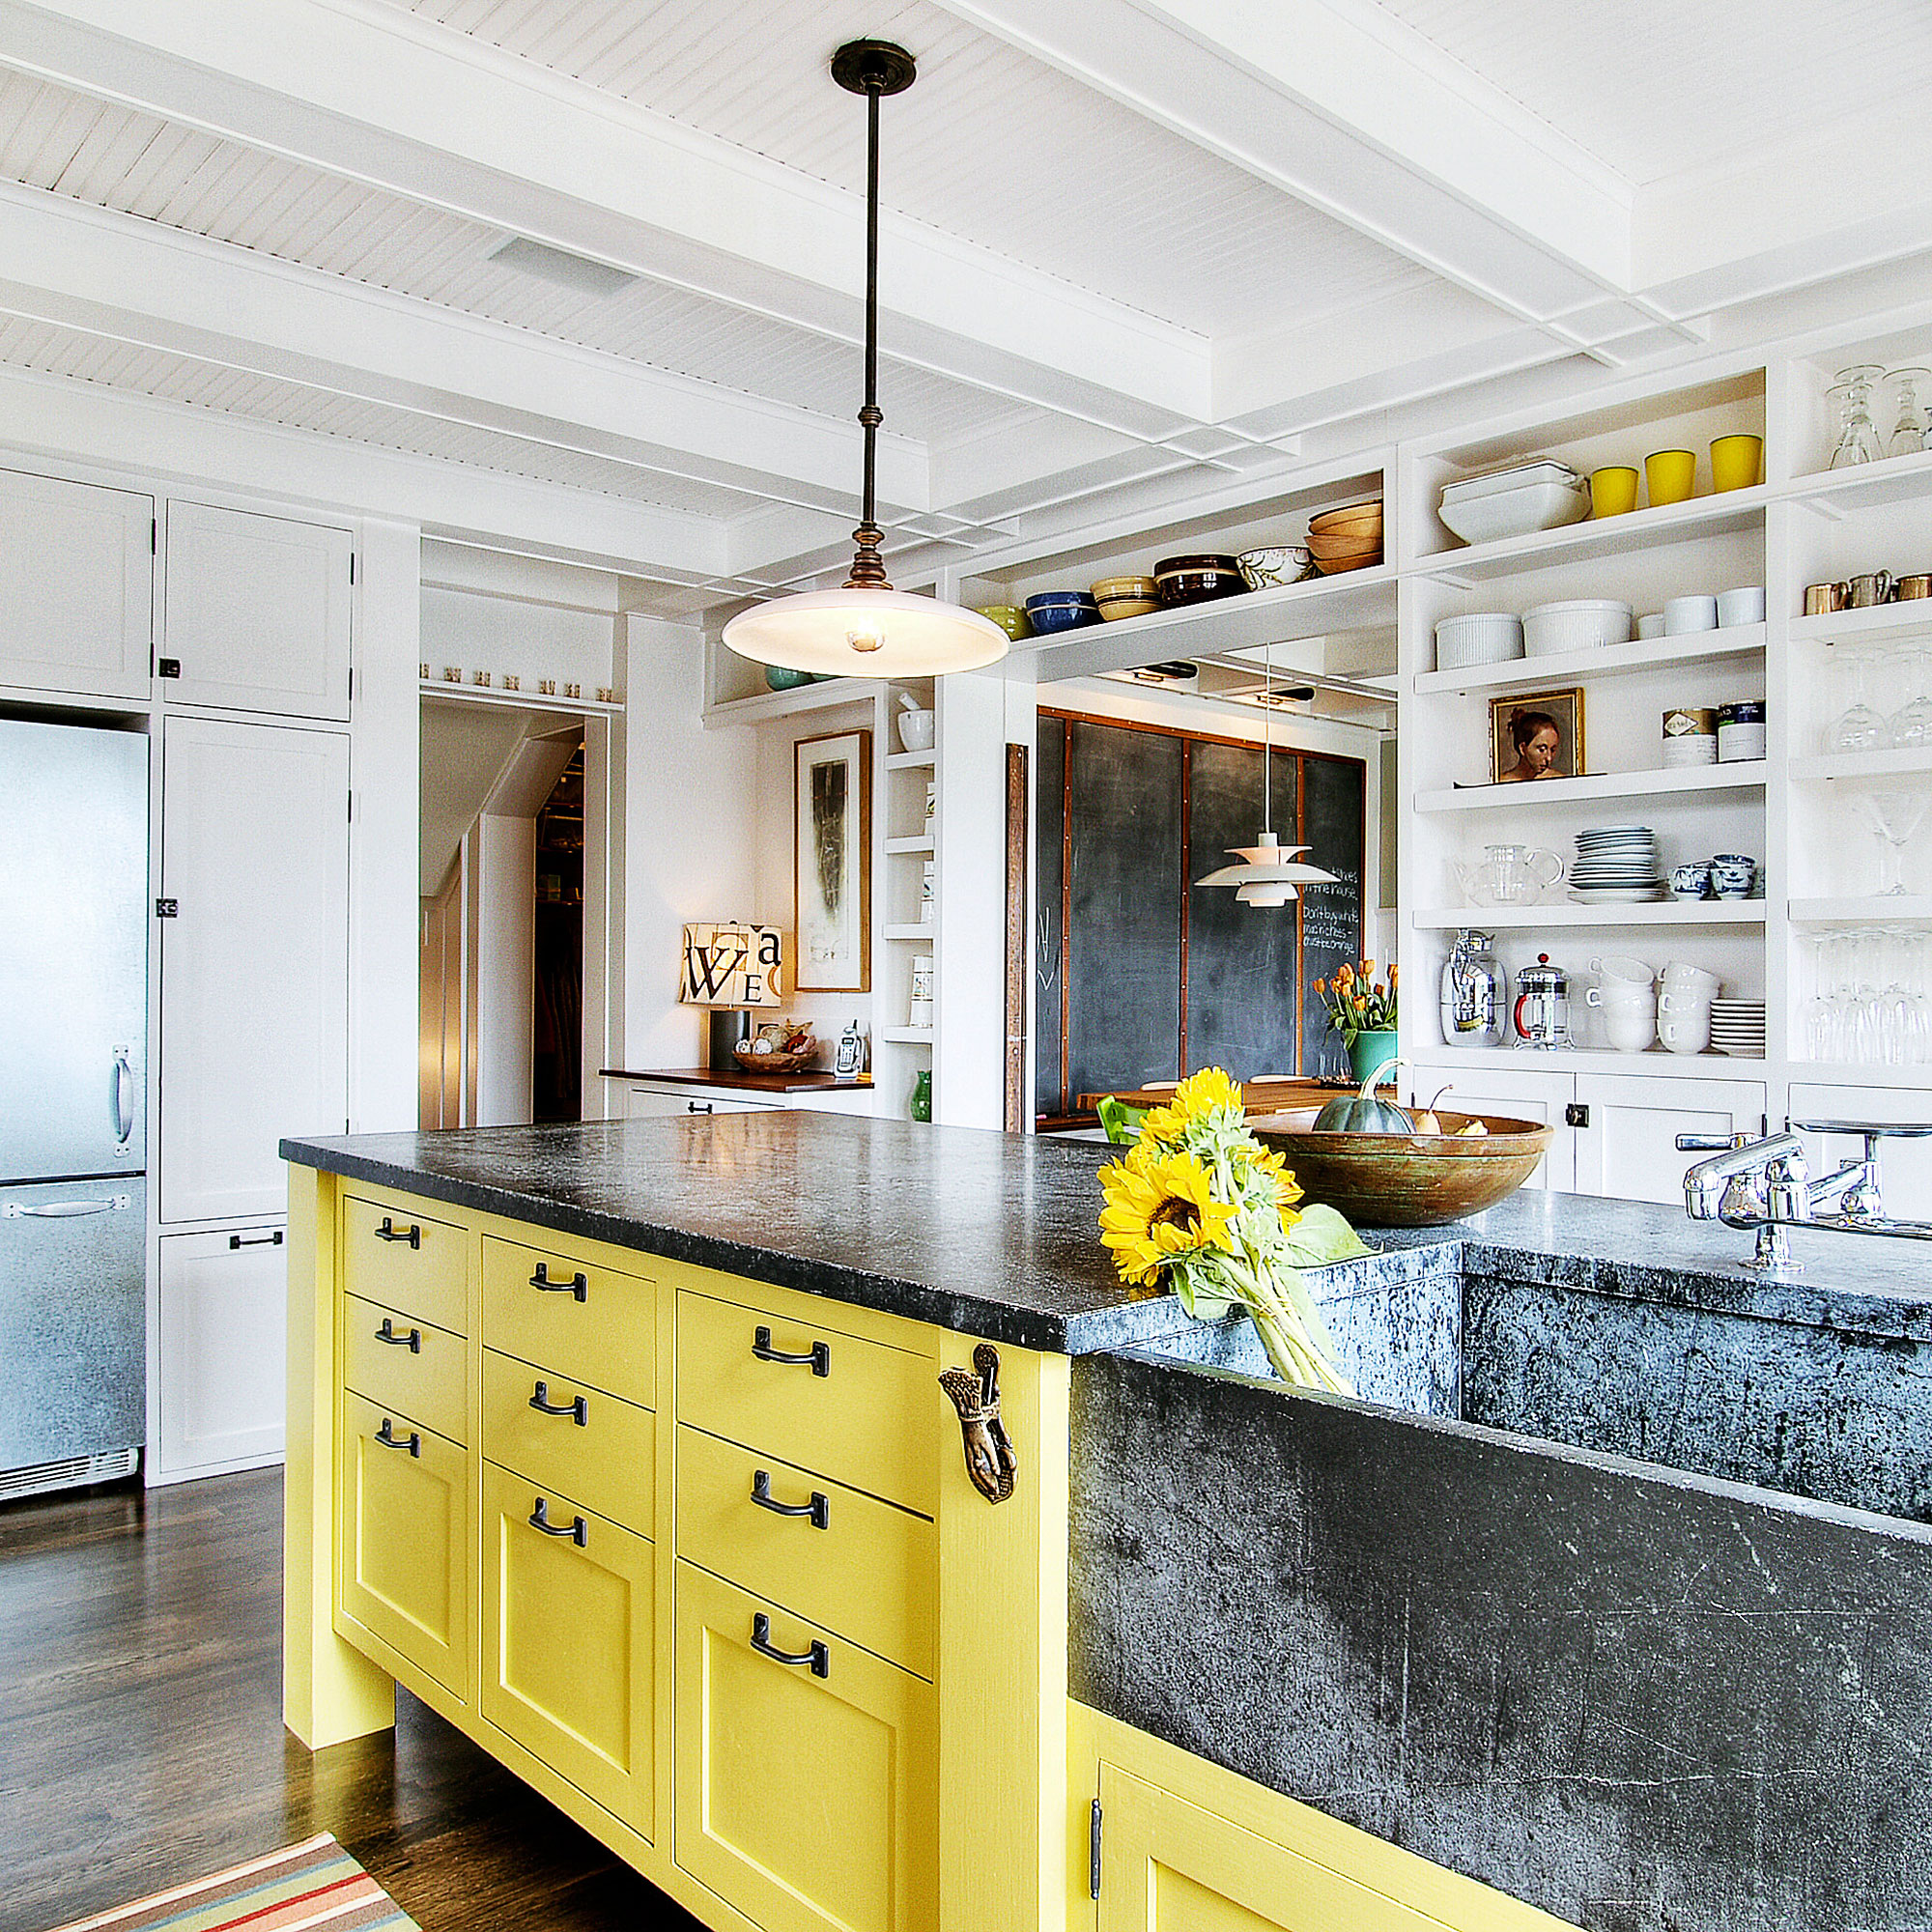 15 Best Kitchen Remodel Ideas: The Latest Ideas, Pro Advice, And Instant Upgrades You